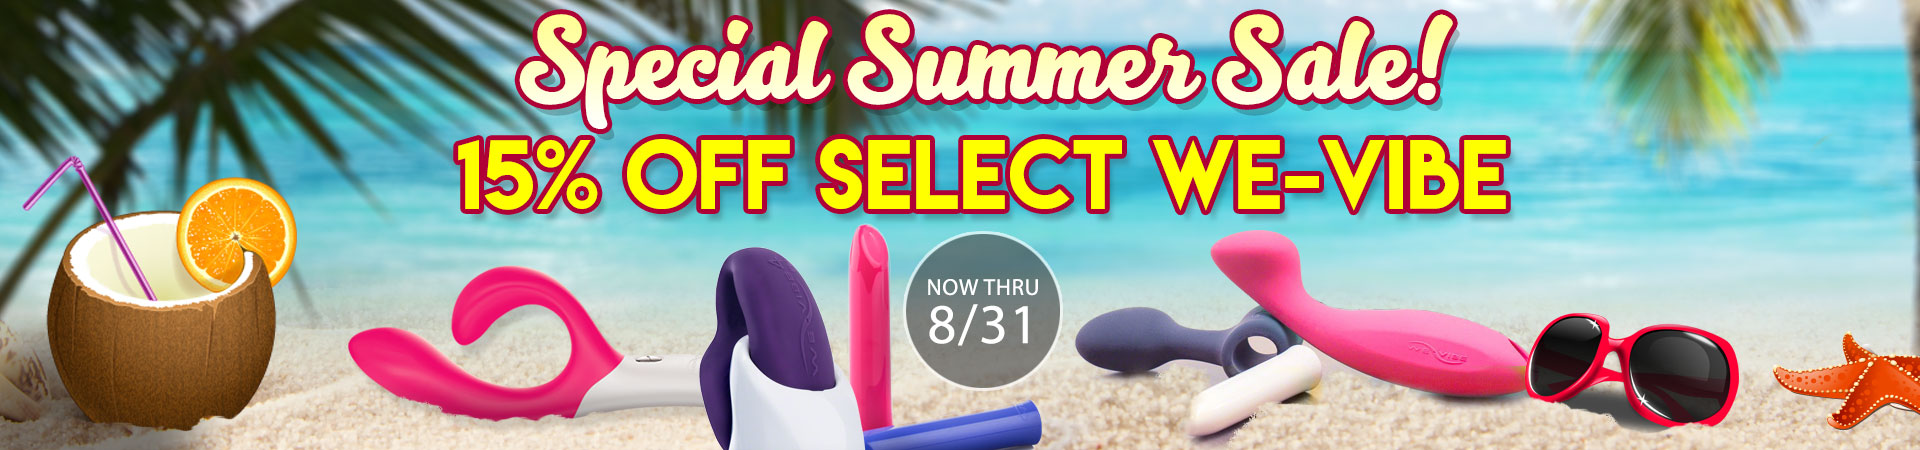 15% Off We-Vibe - Now Thru 7/13